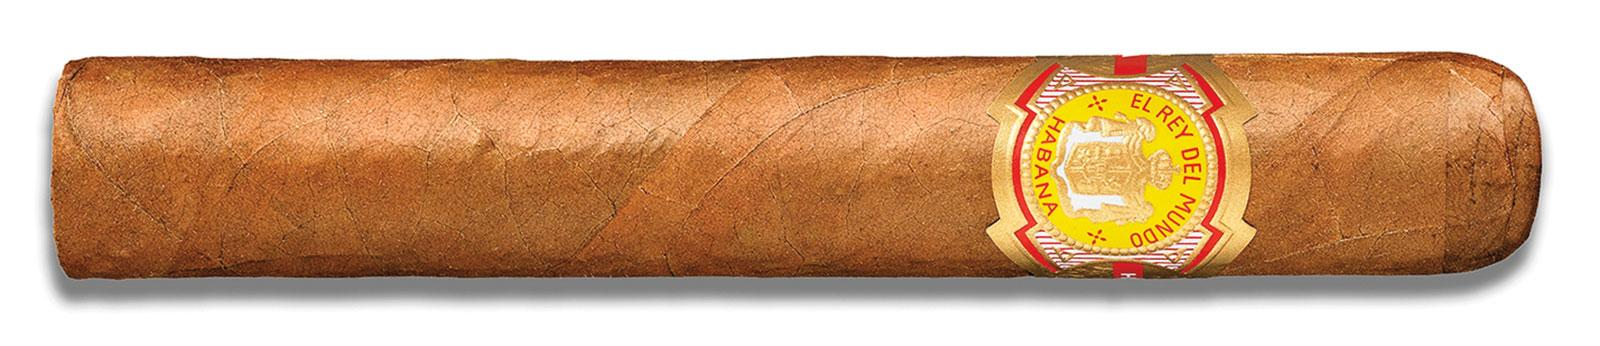 22 High-Scoring Cigars For Your Humidor.